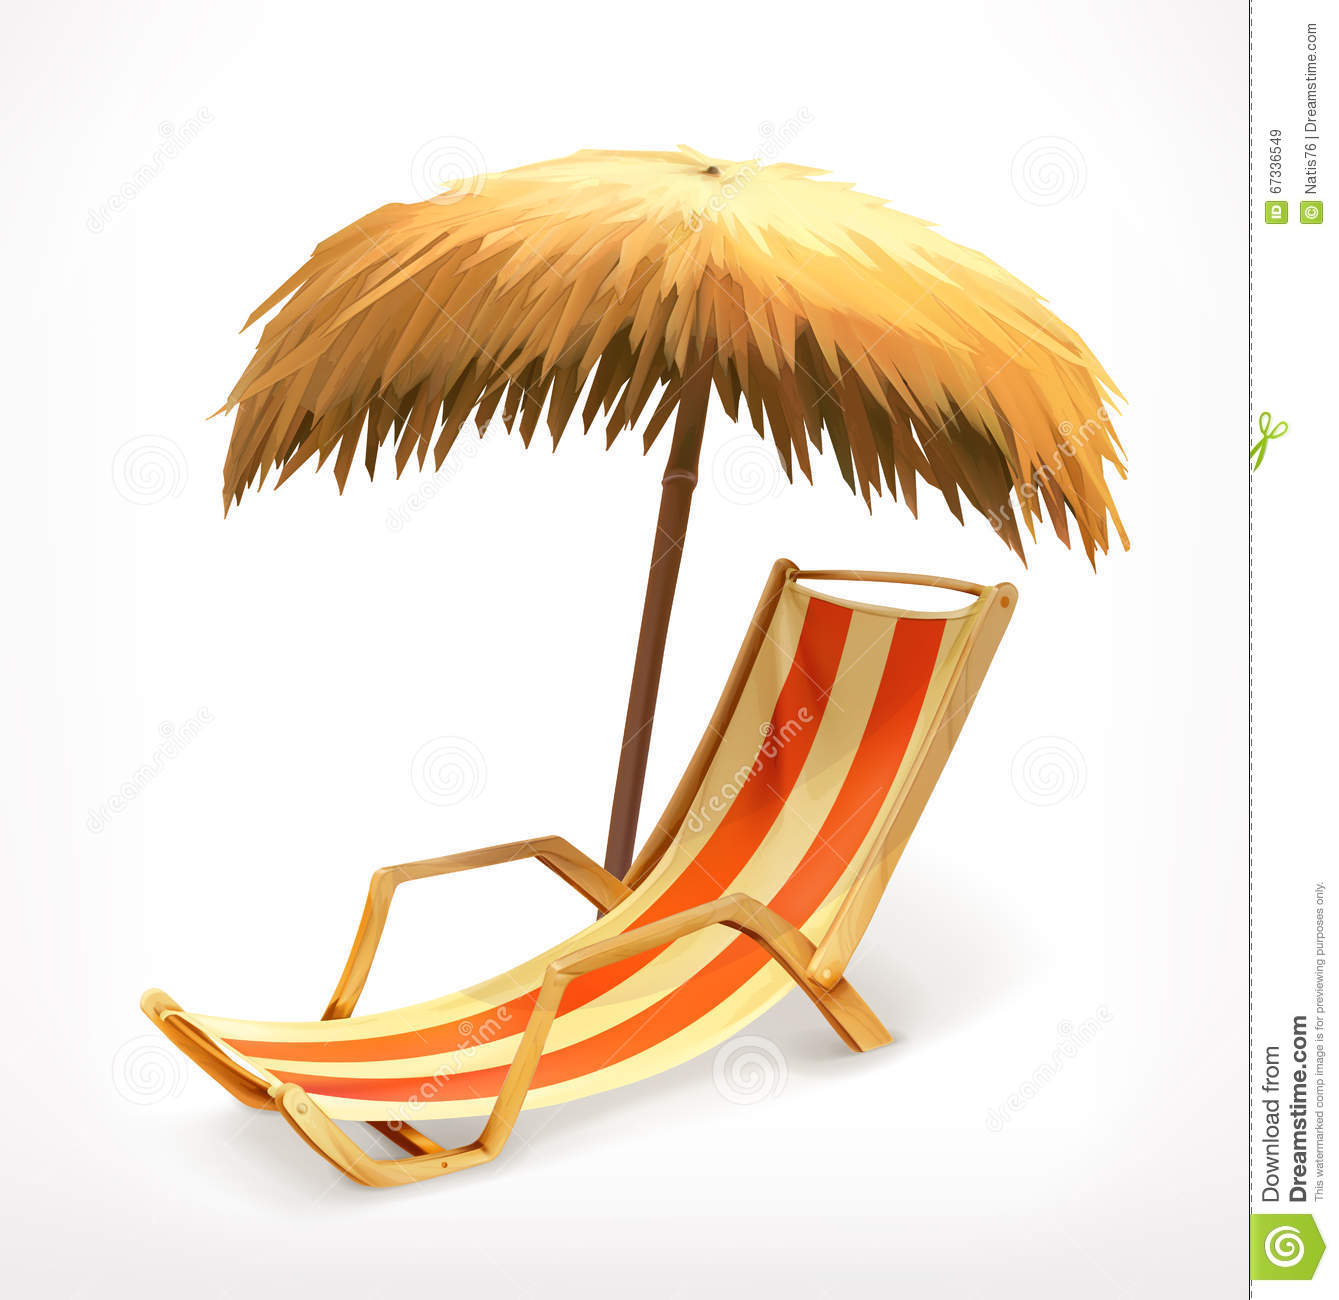 Beach Umbrella And Lounge Chair Vector Image 67336549 – Lounge Chair Umbrella